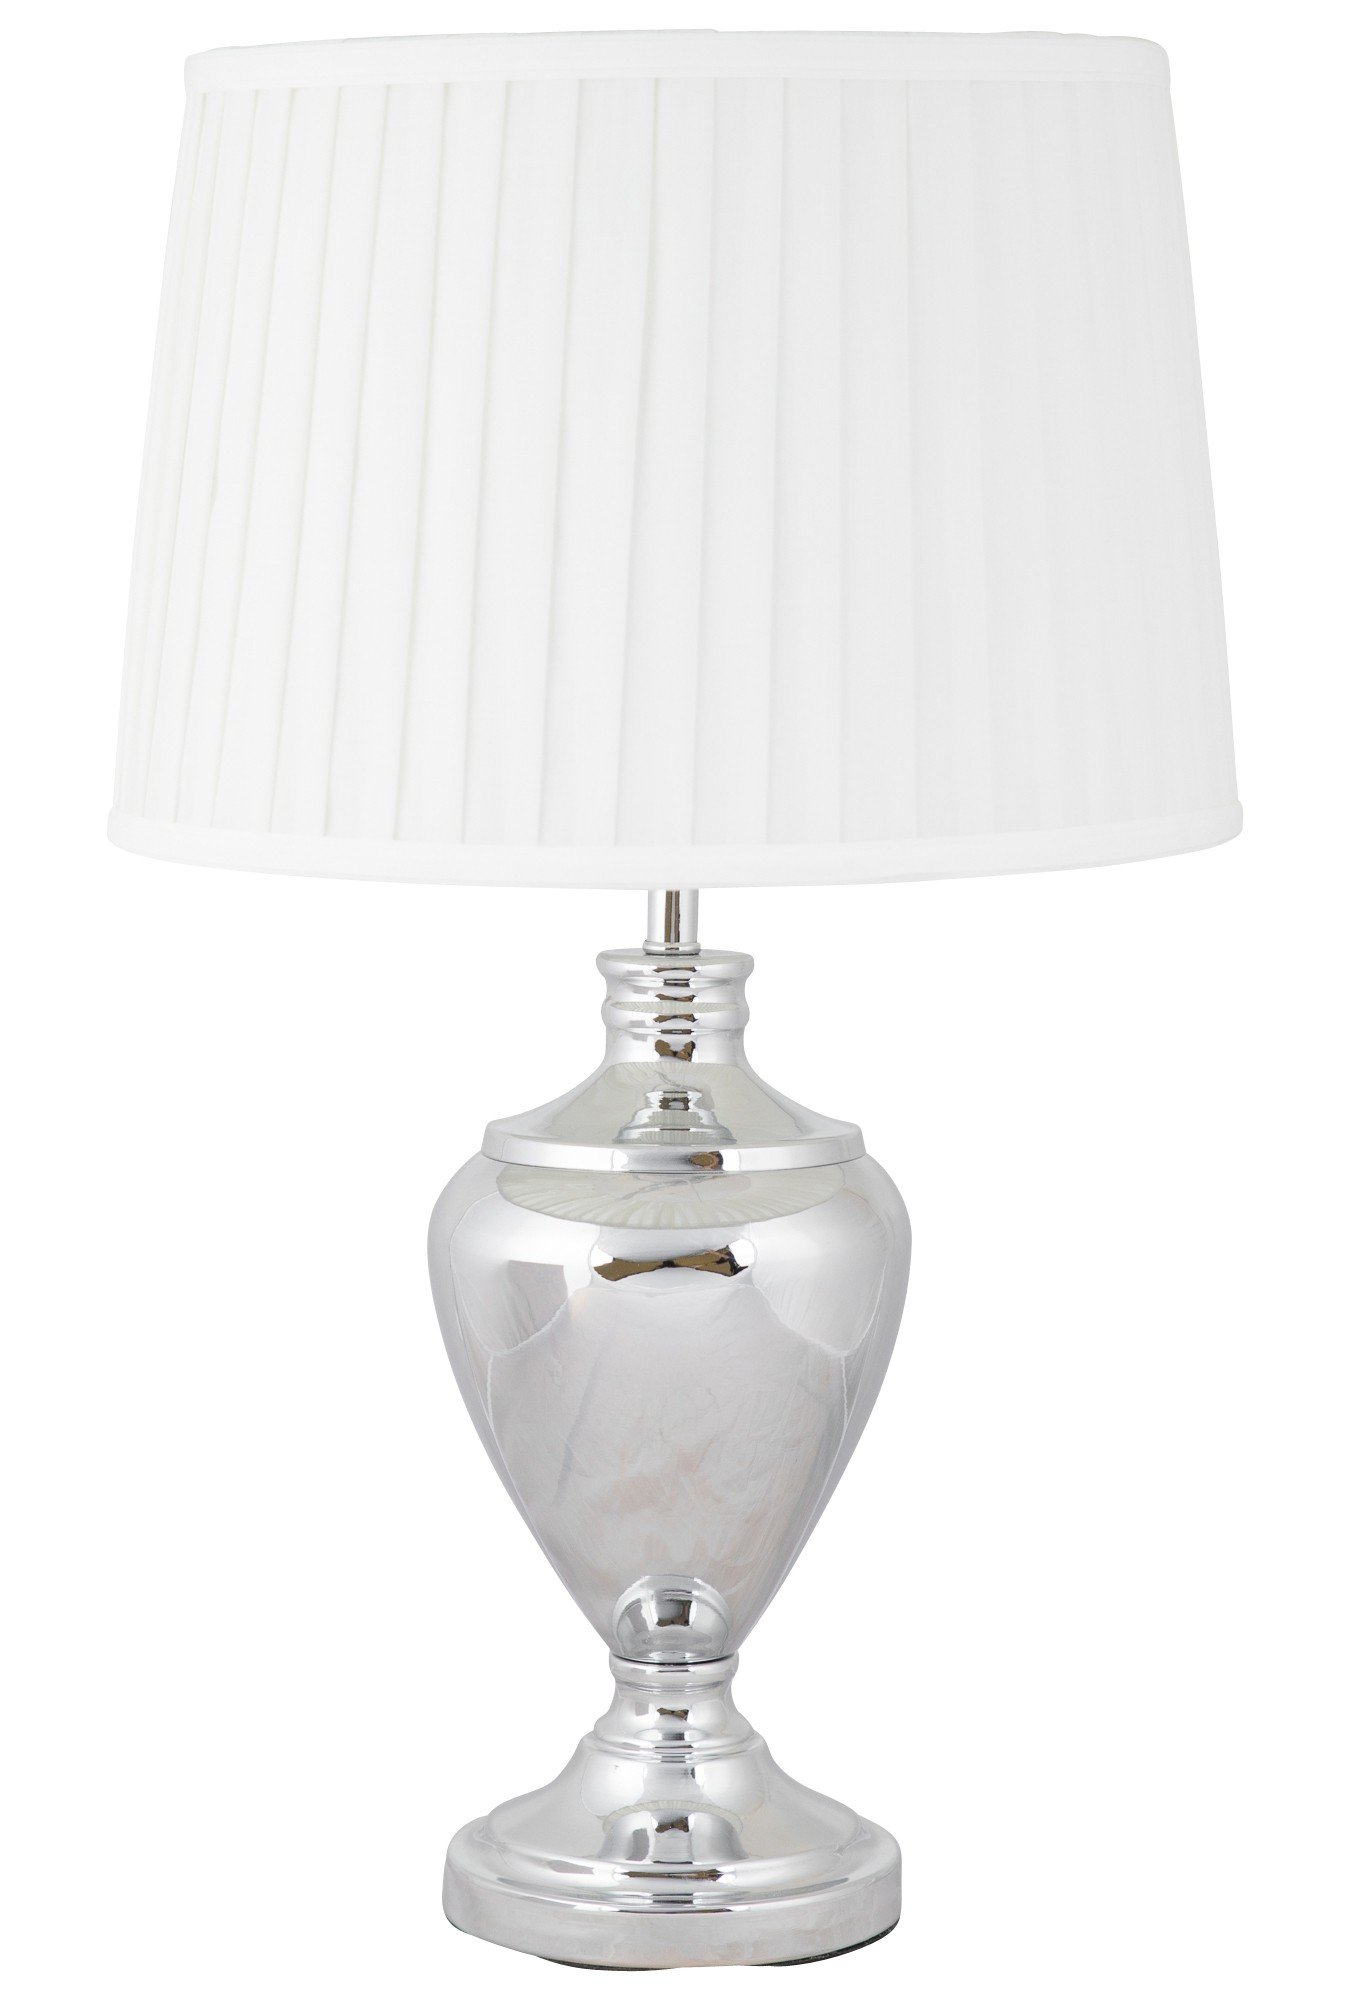 Large Contemporary 58cm Urn Table Lamp